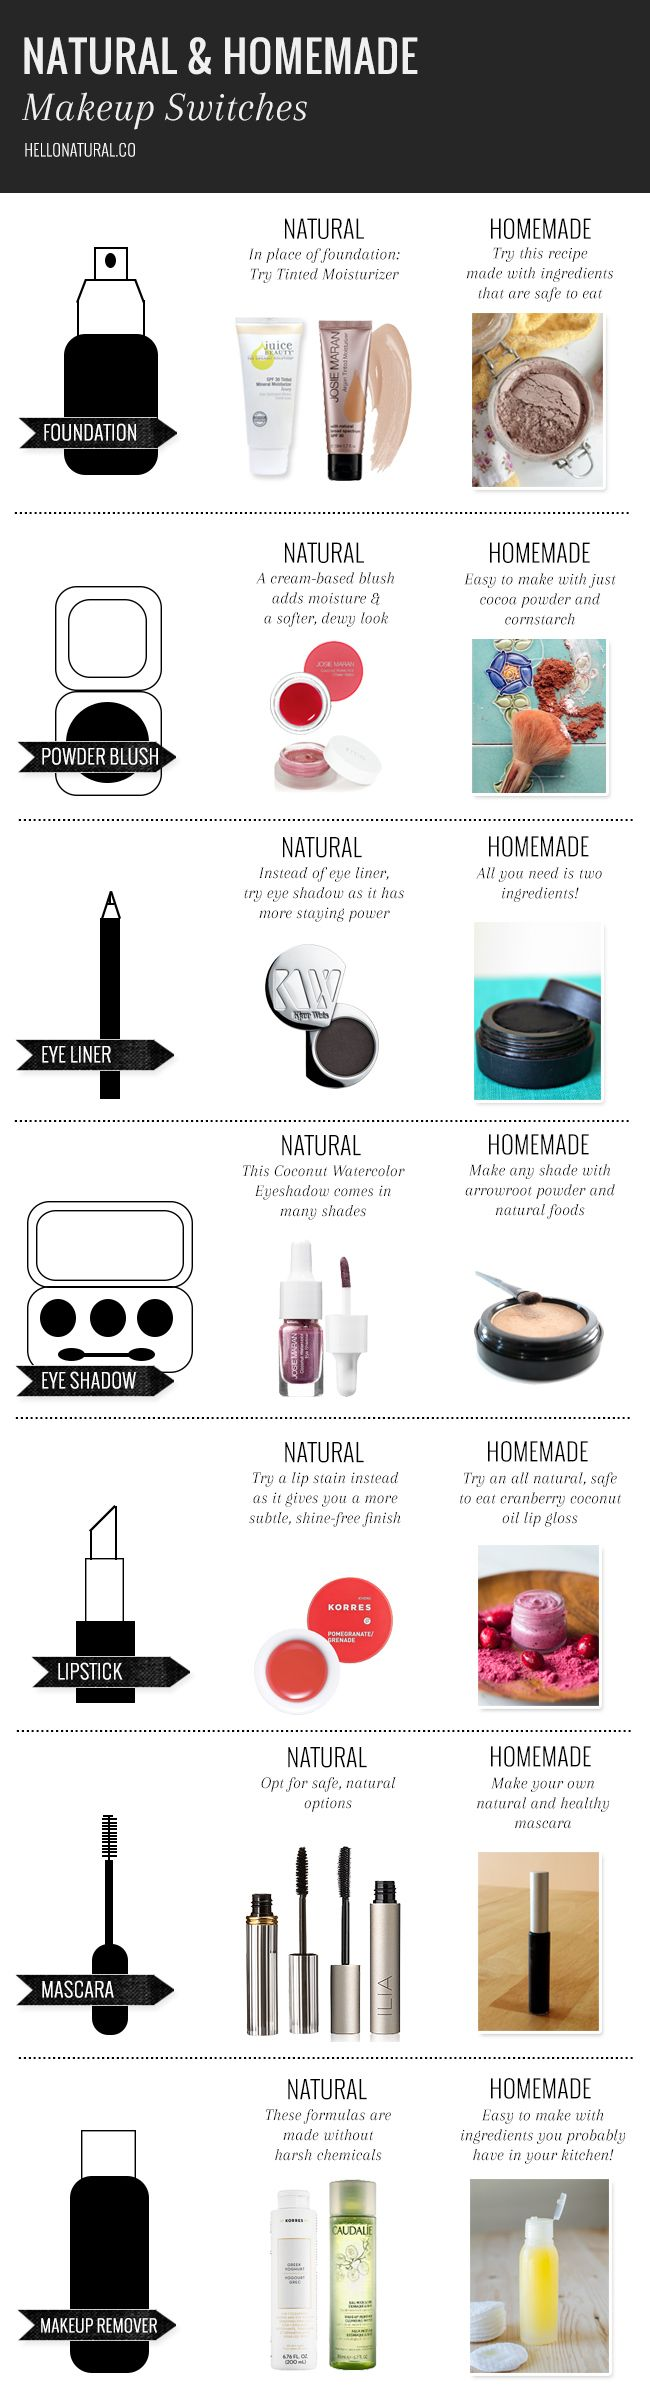 7 Best Homemade Makeup Recipes | HelloNatural.co